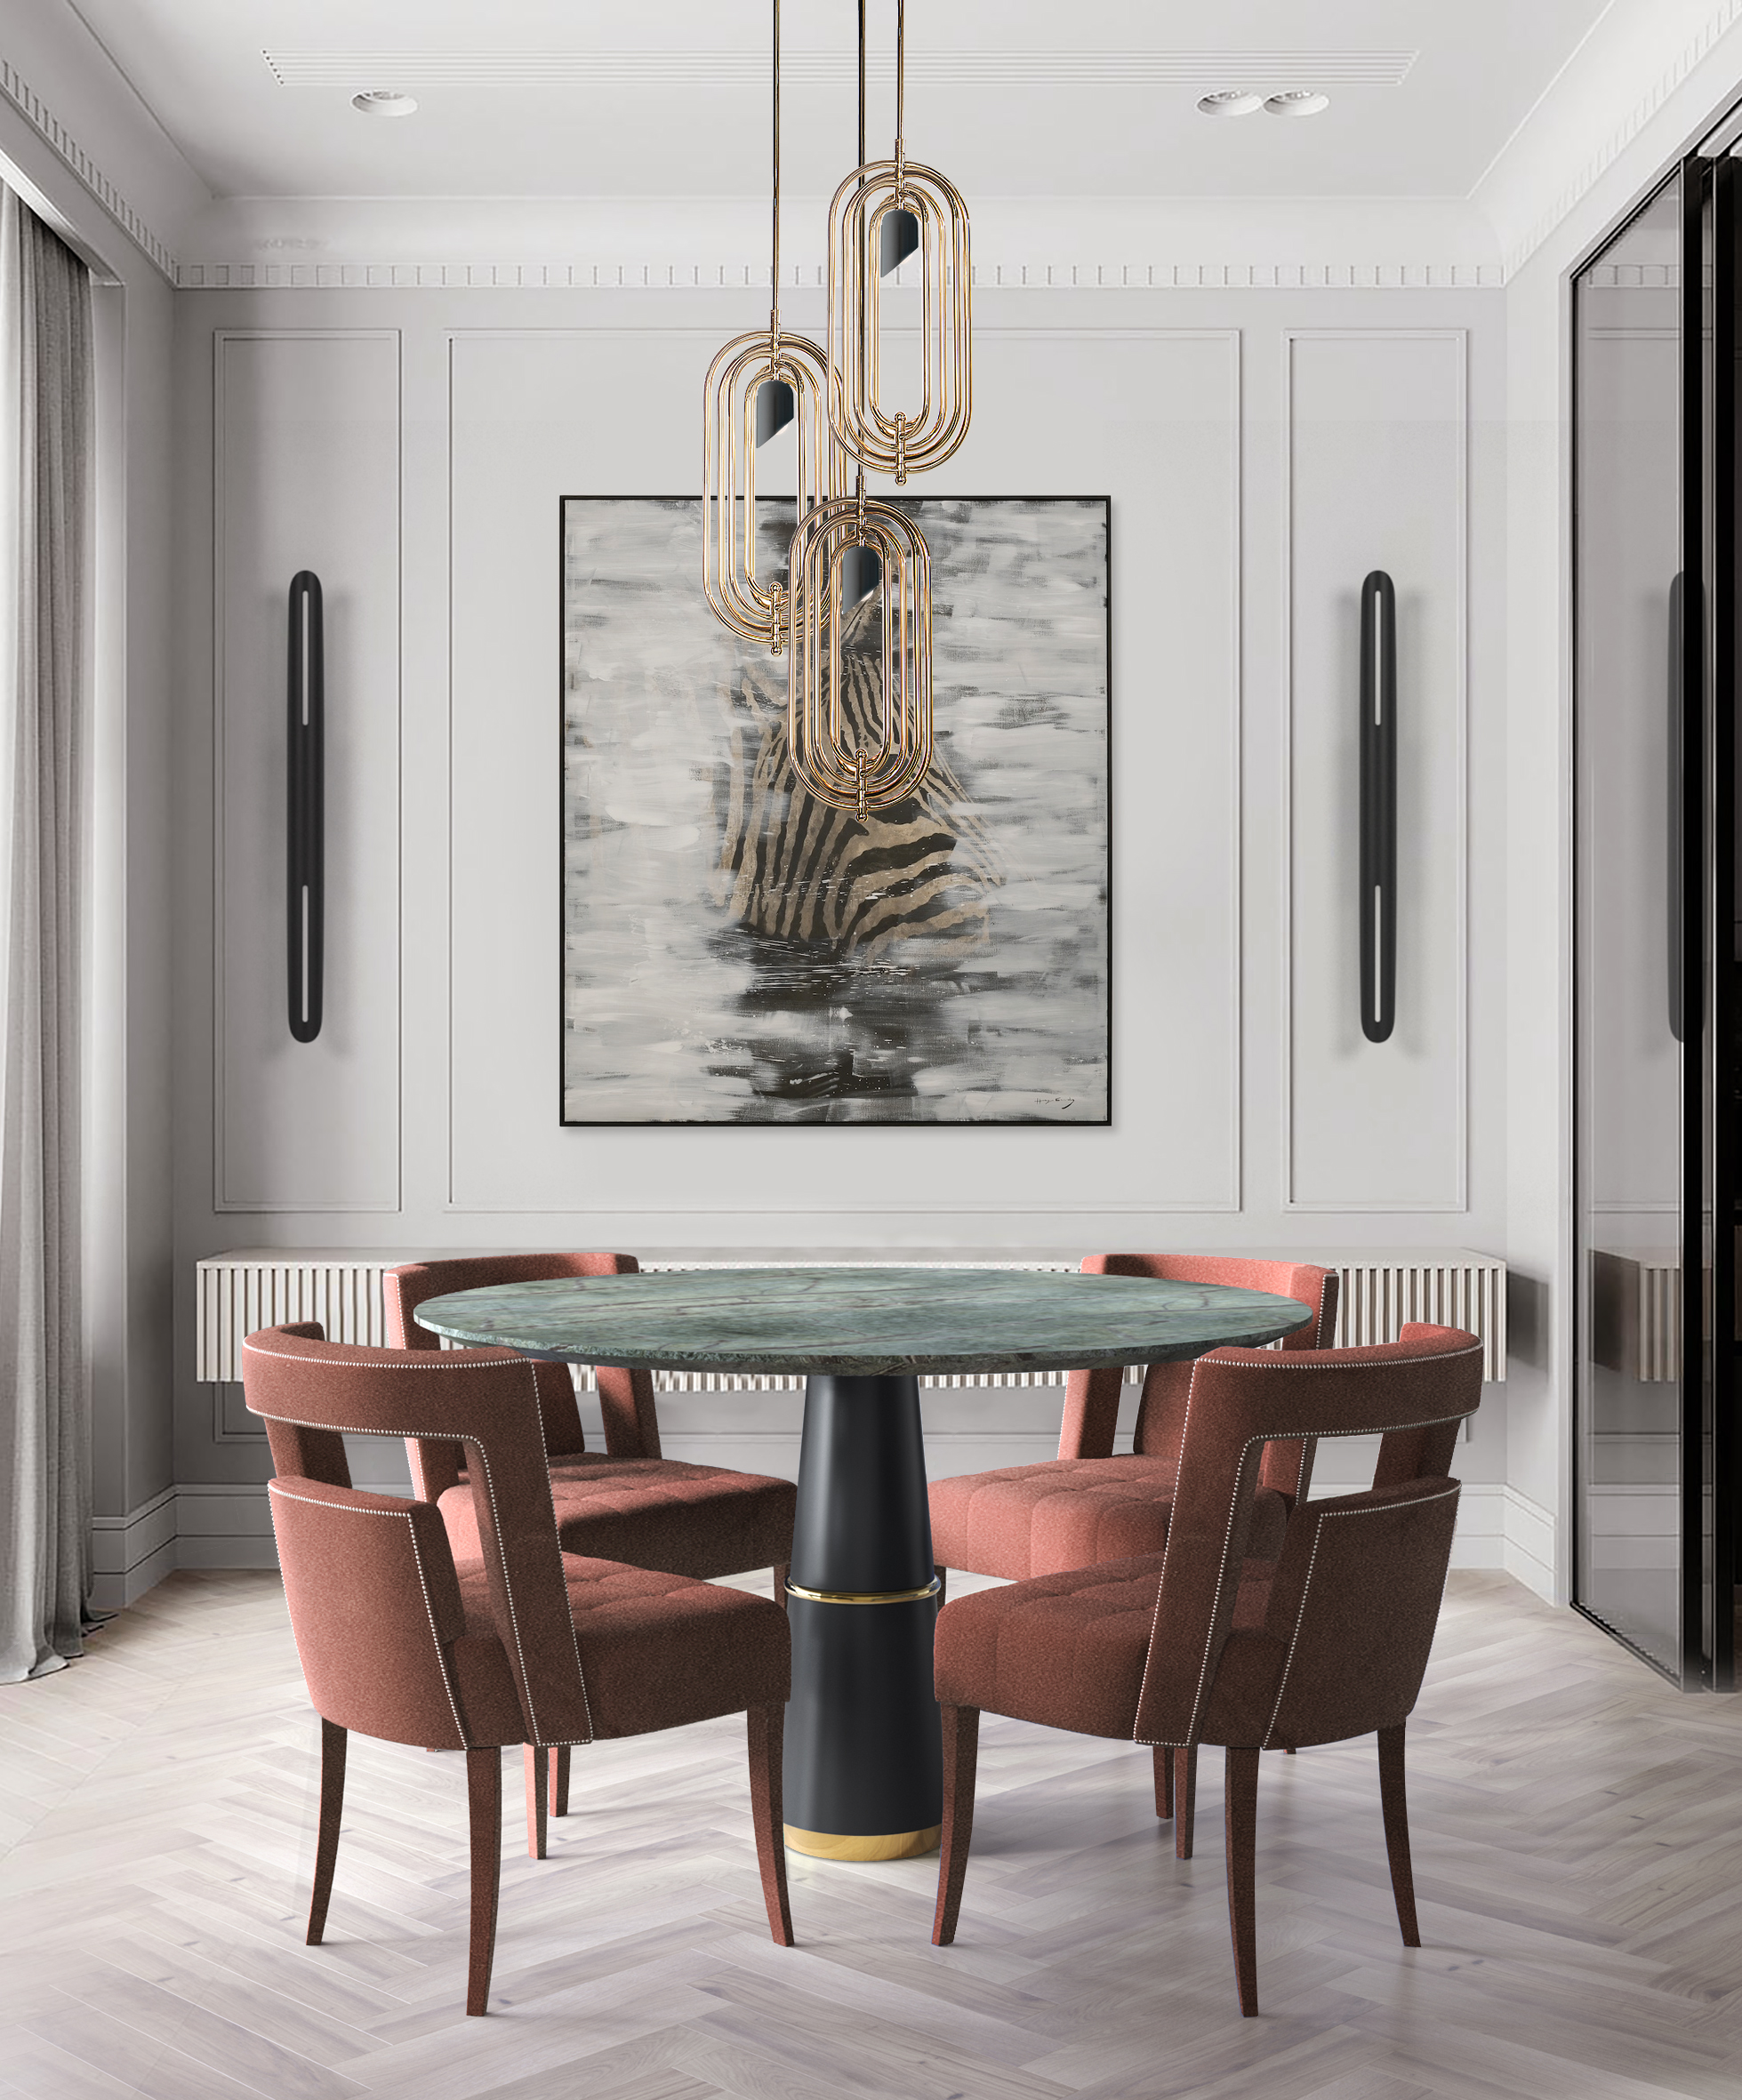 These Mid Century Dining Rooms Will Have You Dining in Every Night! mid century dining rooms These 6 Mid Century Dining Rooms Will Have You Dining in Every Night! 3